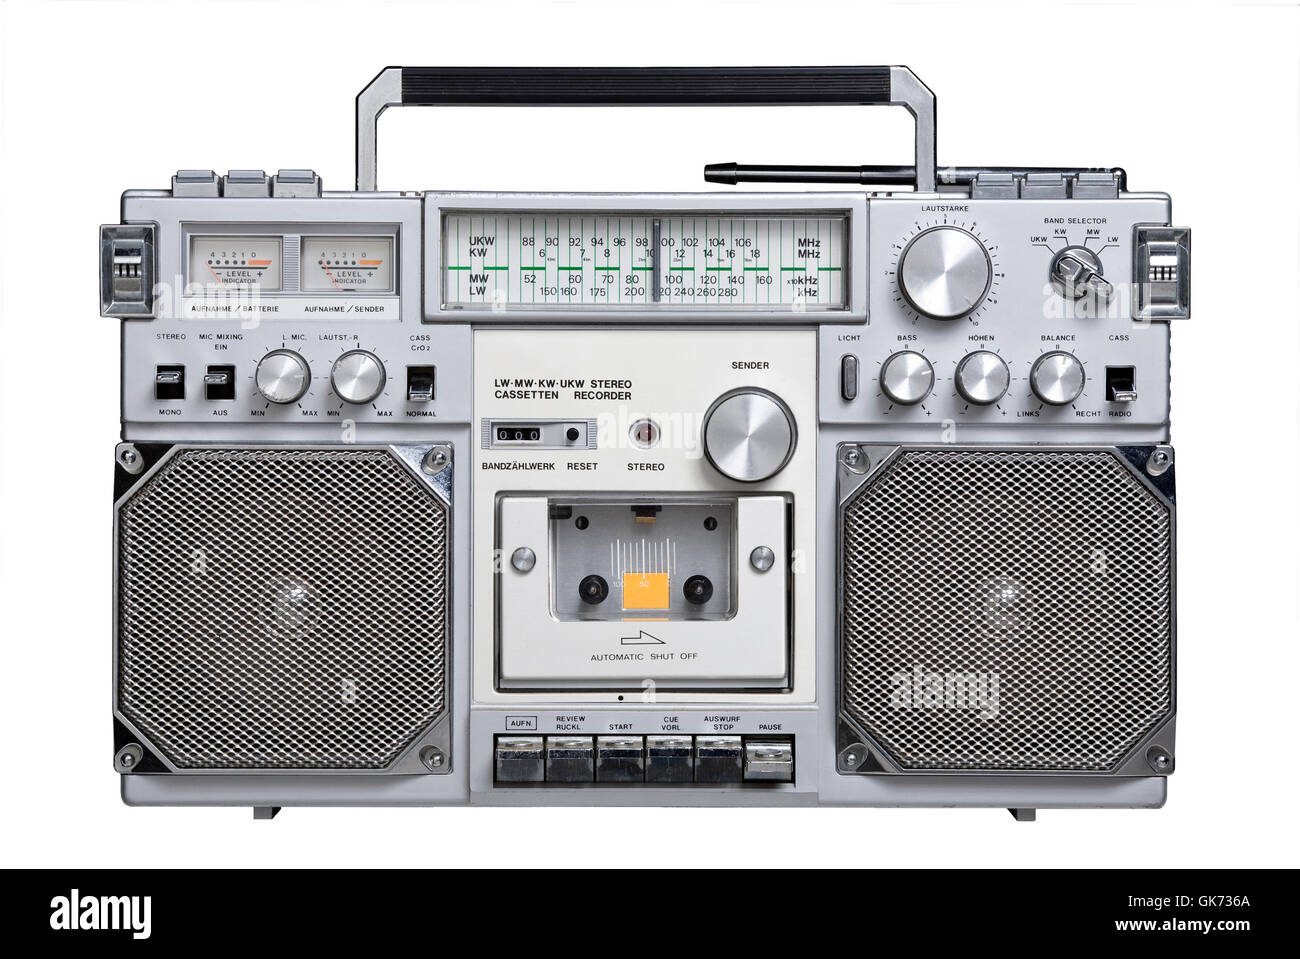 rstereo radio cassette - Stock Image